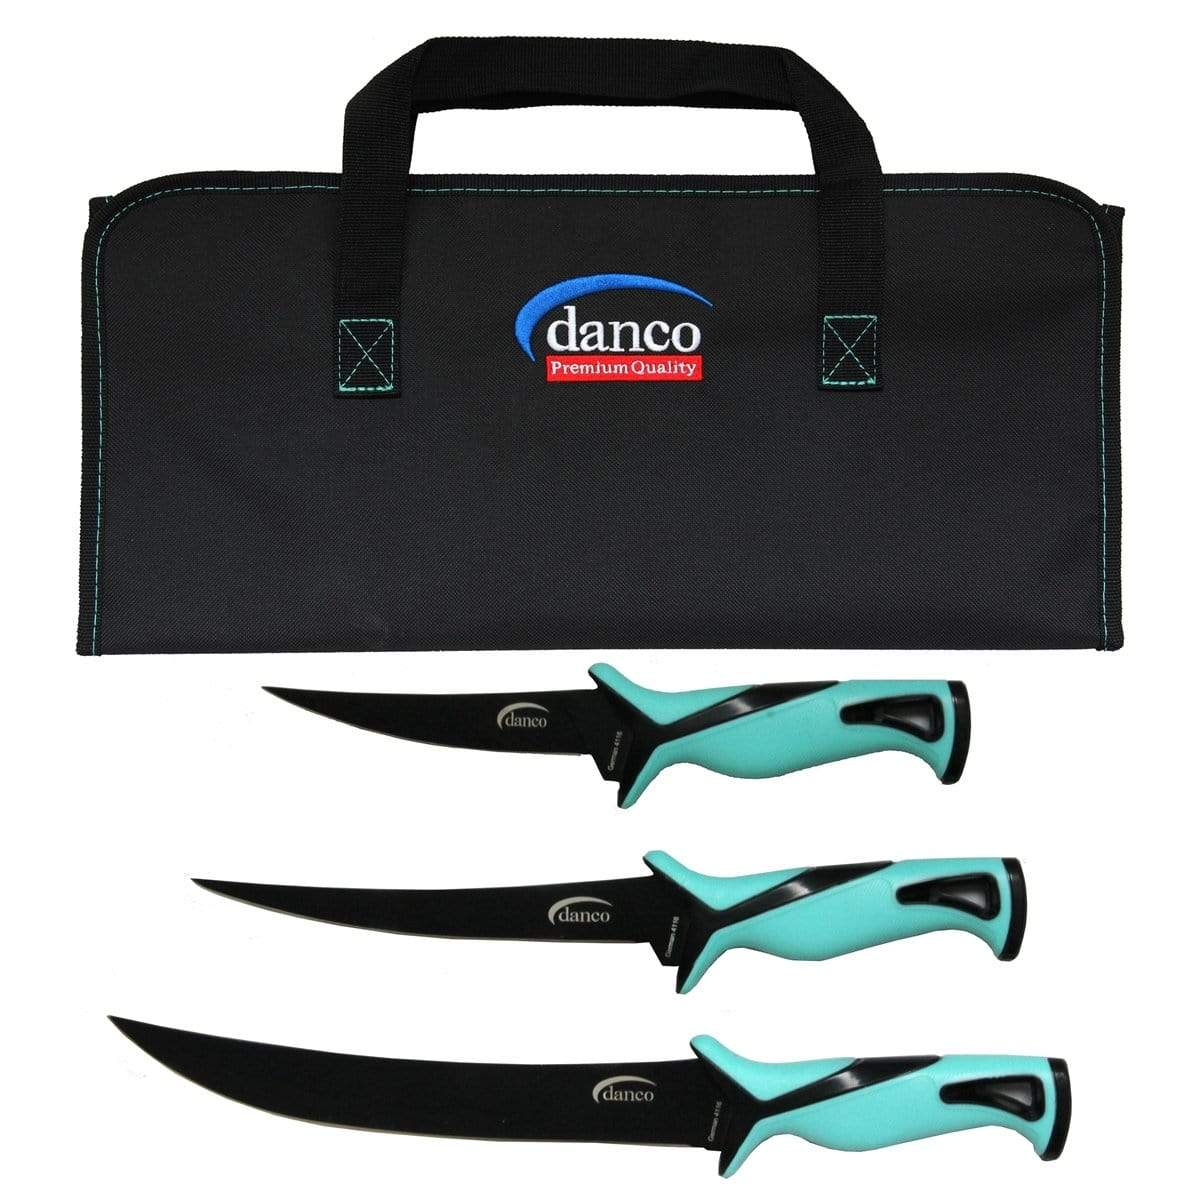 Danco Pro Series Roll Up Bag Kit